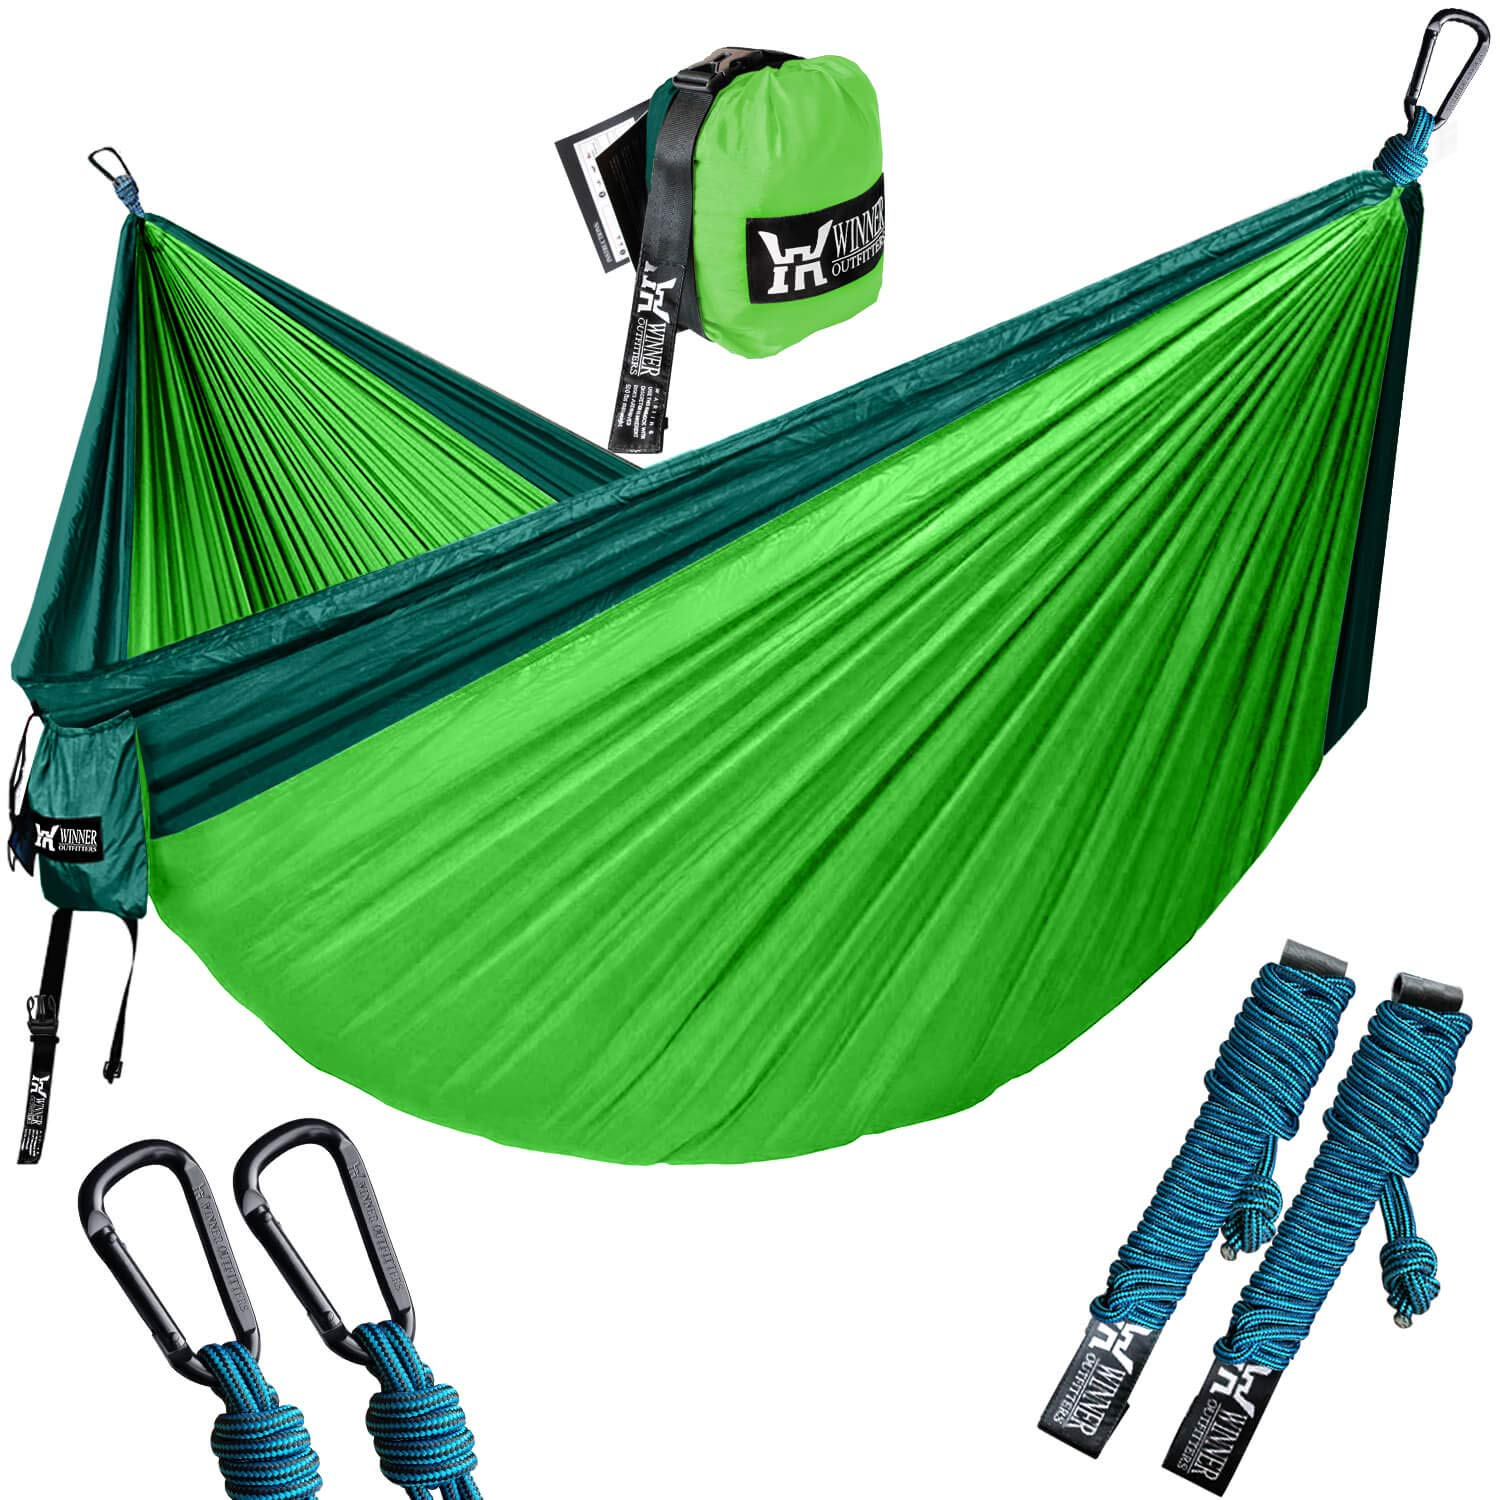 Winner Outfitters Double Camping Hammock with Stand- Lightweight Nylon Portable Hammock, Parachute Double Hammock for Backpacking, Camping, Travel, Beach, Yard